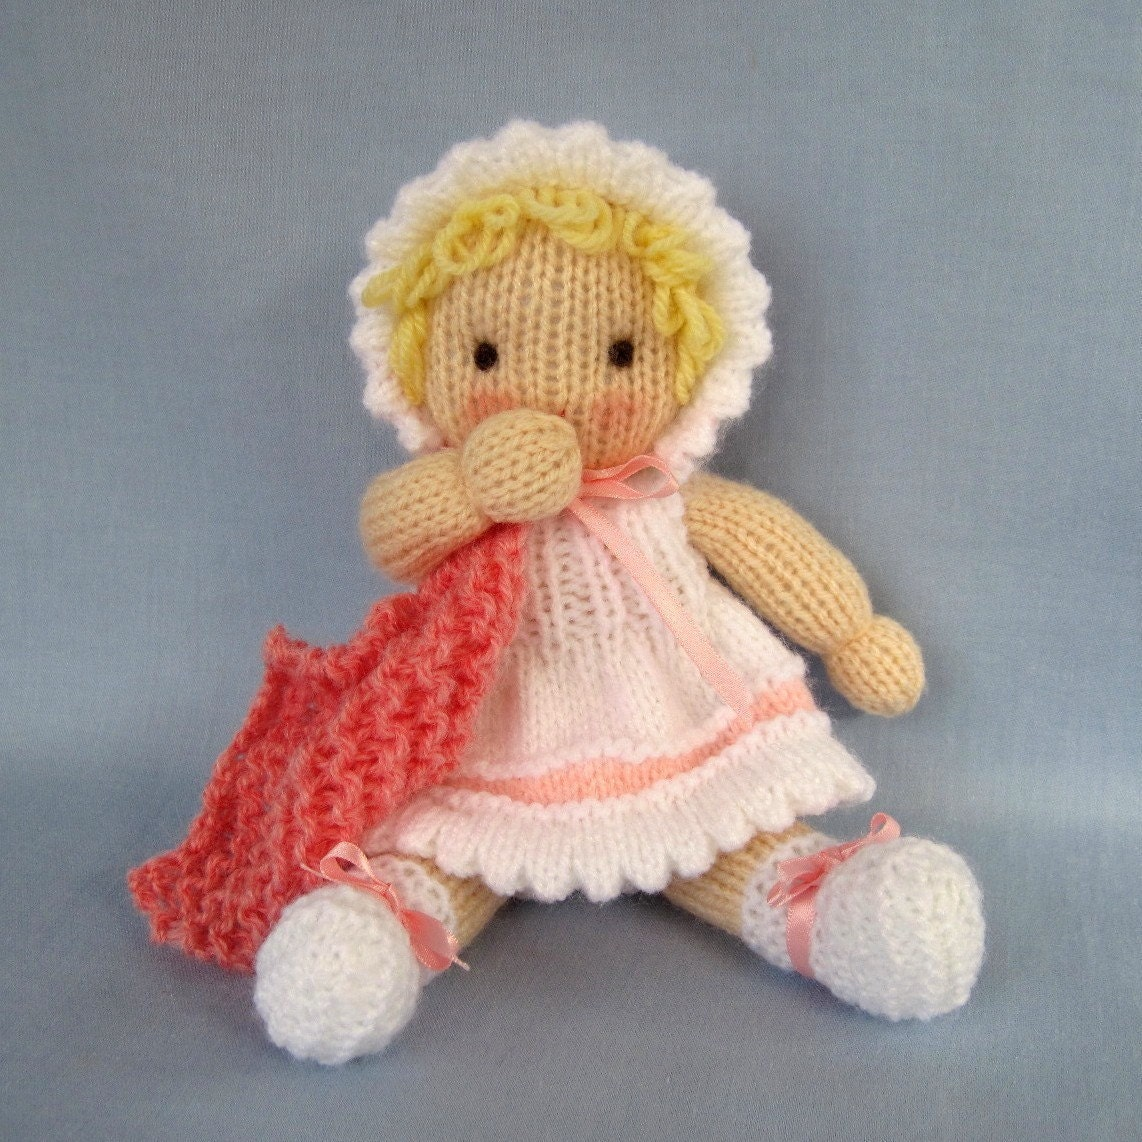 LITTLE DAISY knitted toy baby doll PDF email by dollytime